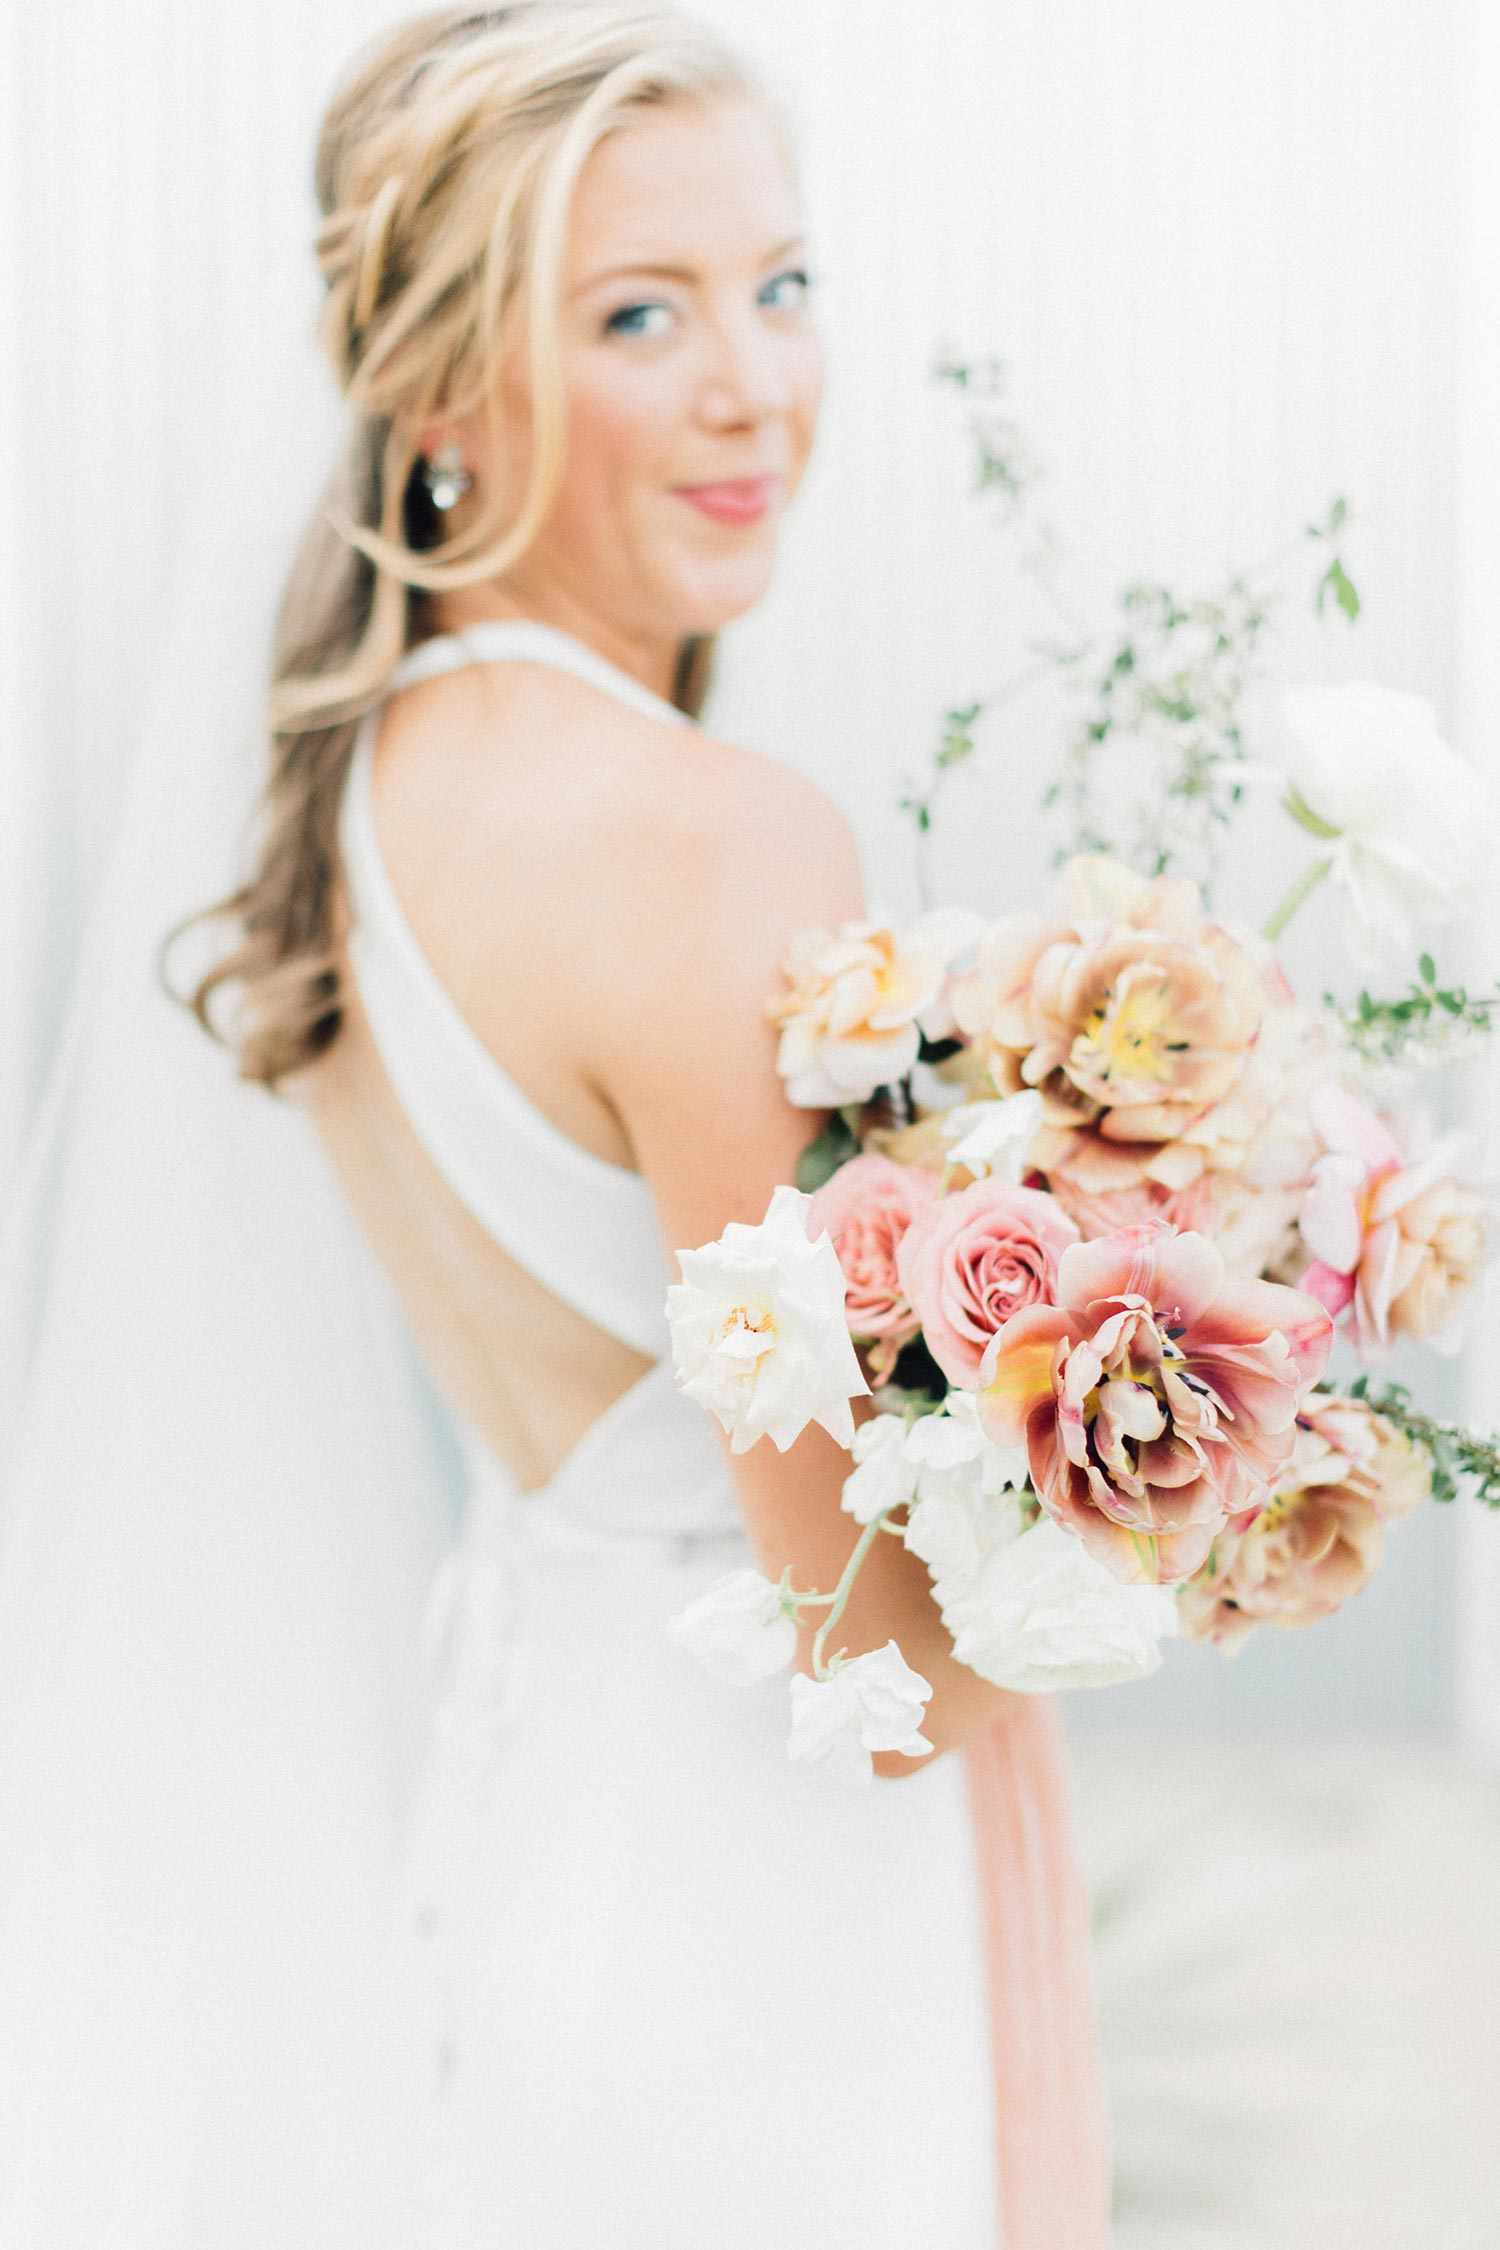 Flowers and bride by florist Color Theory Collective